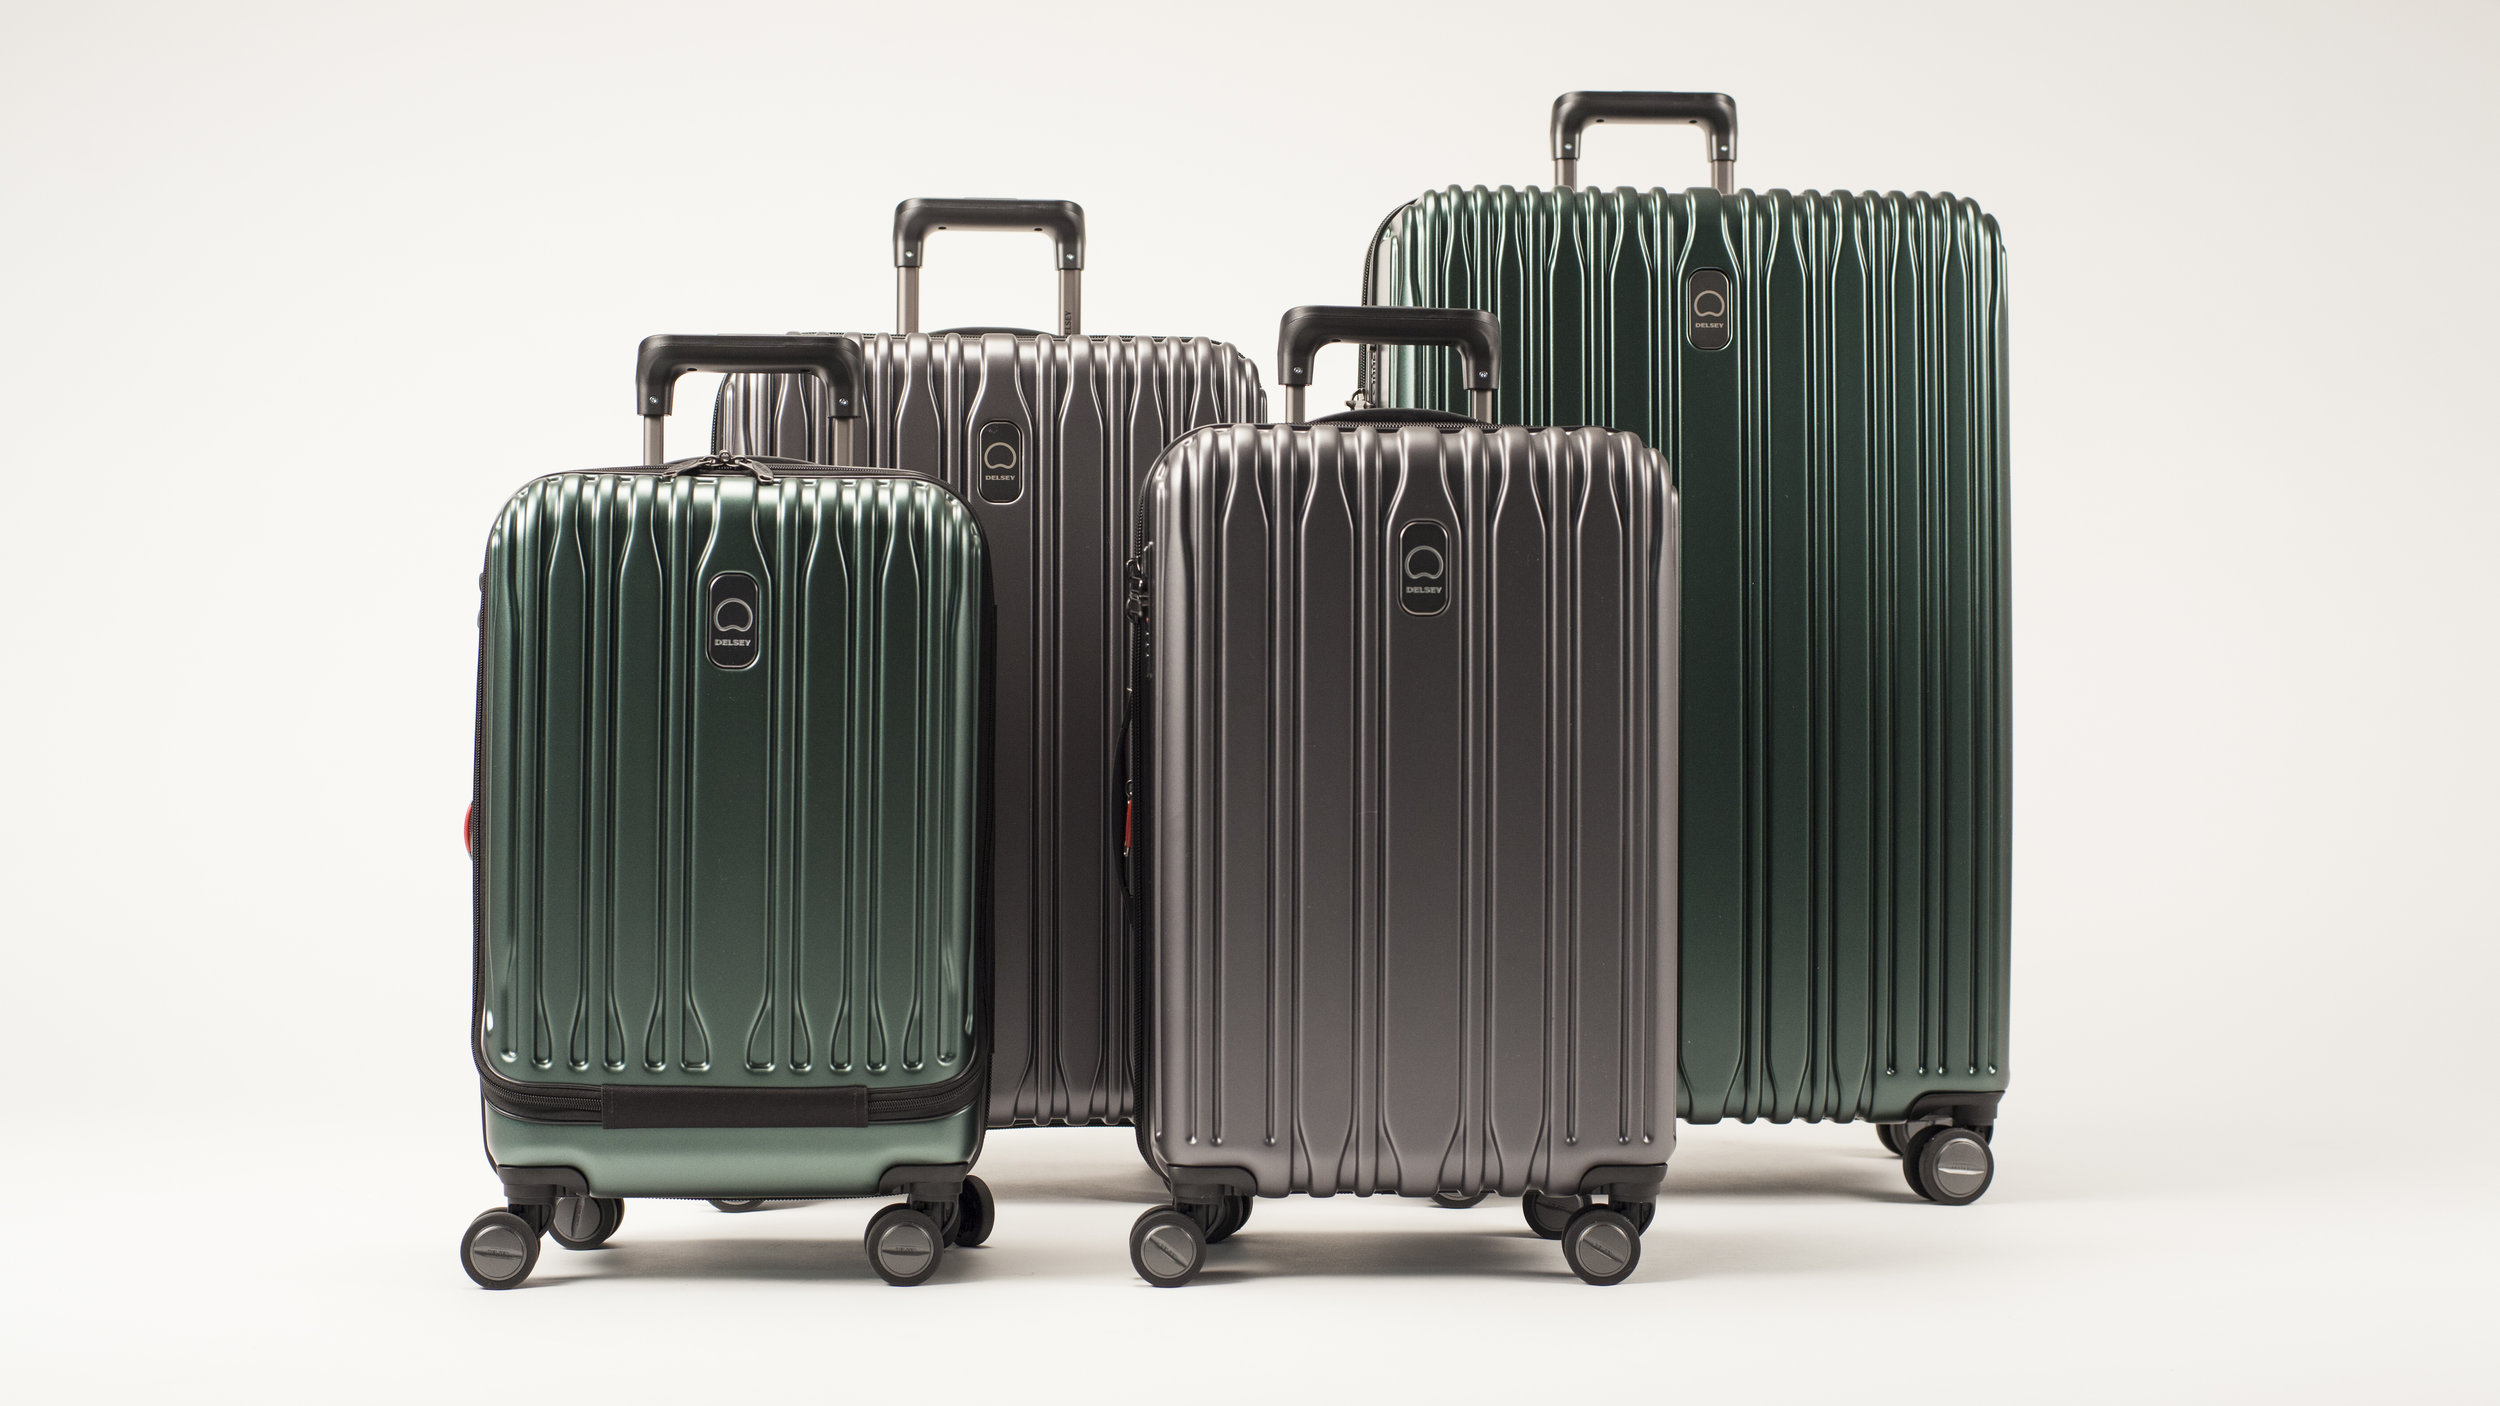 Delsey Luggage - Product Video